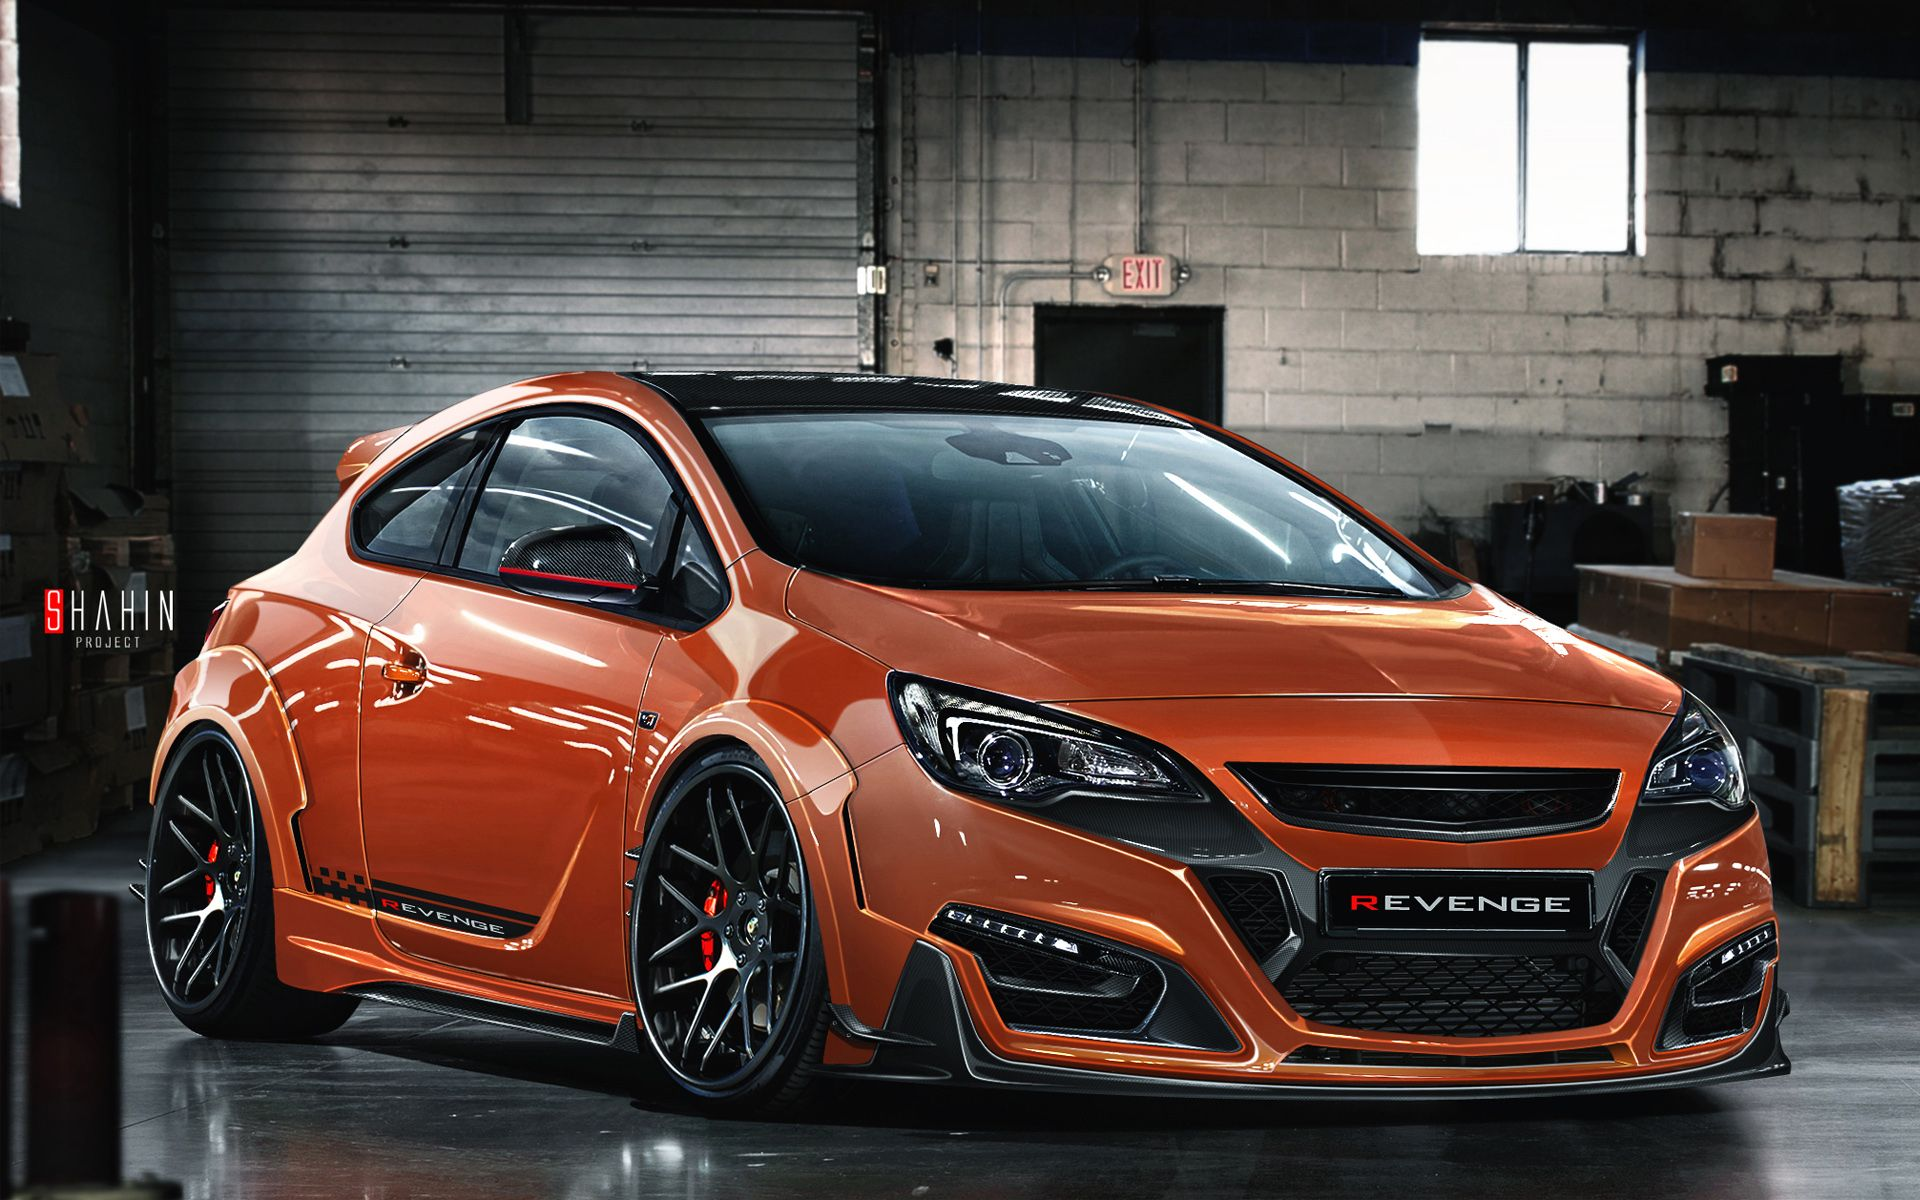 2015 Opel Astra GTC Revenge Wallpaper | HD Car Wallpapers